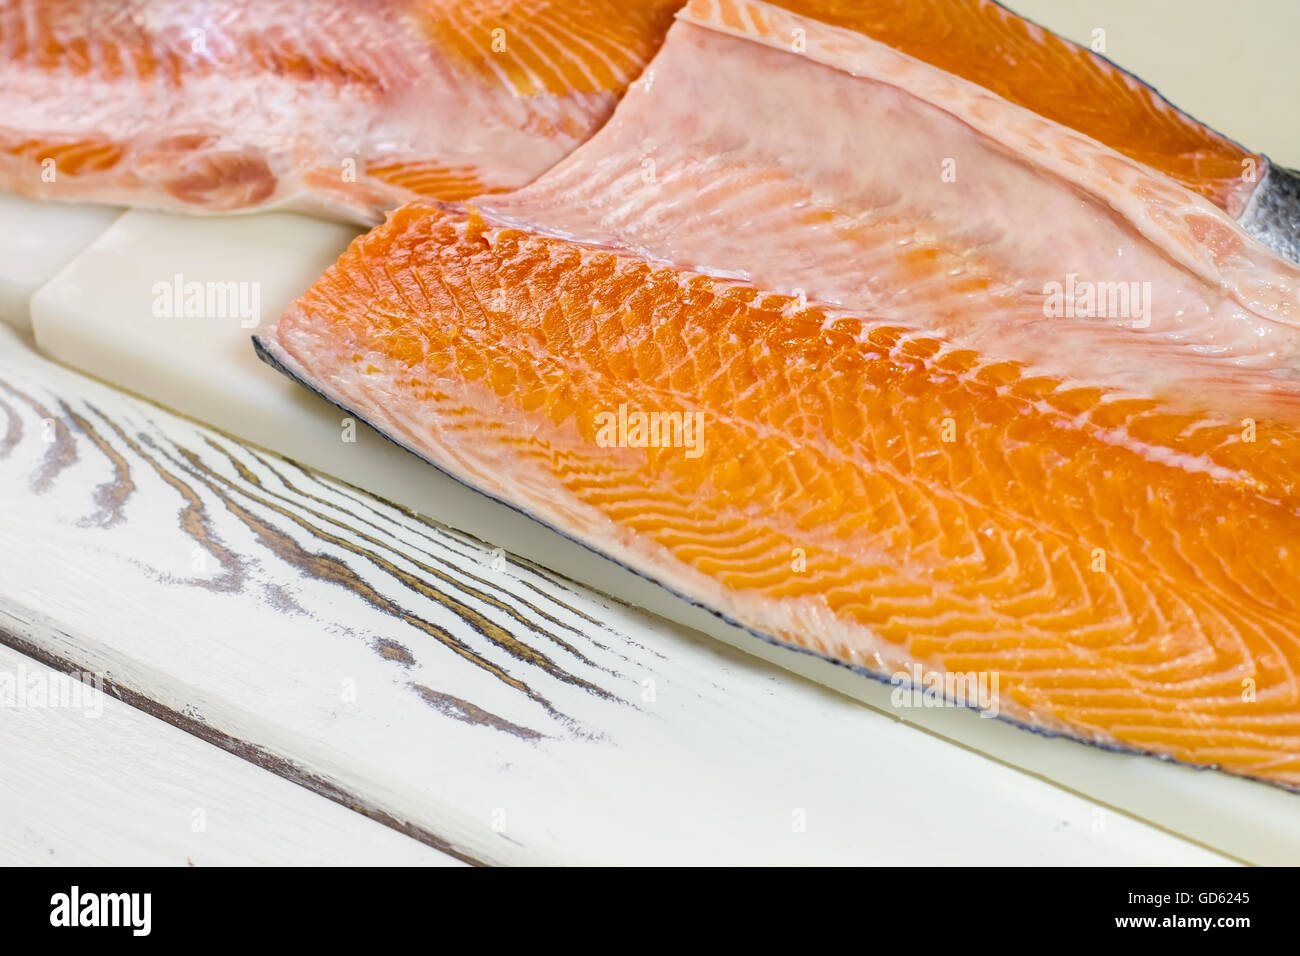 Raw Fish Meat Fish On Beige Cooking Board Salmon Fillet For Sushi